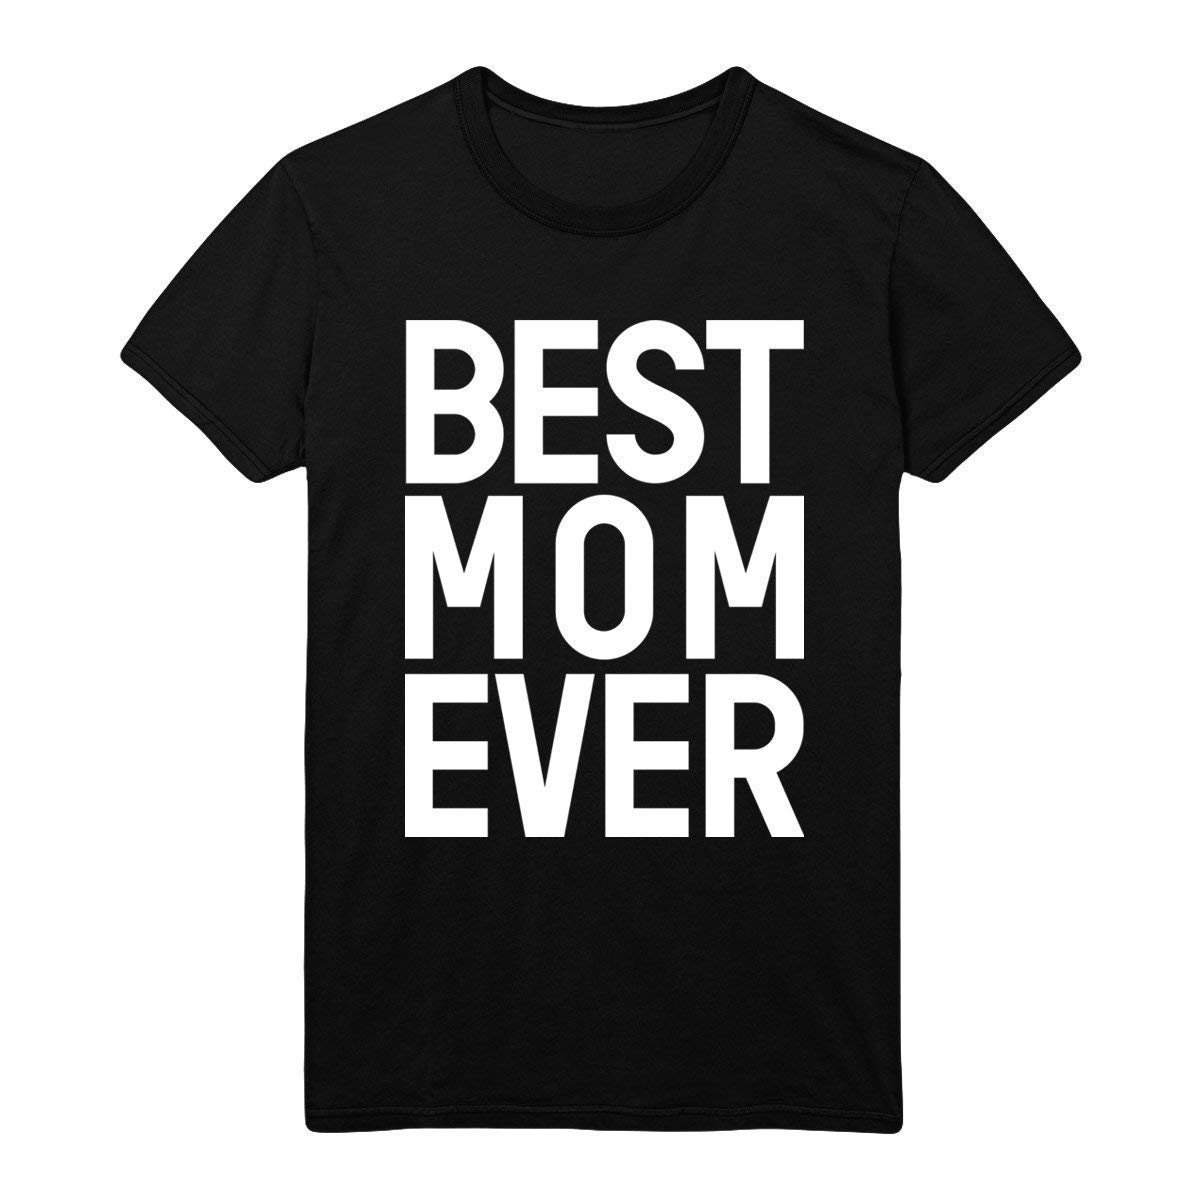 Best Mom Ever Tops Casual Graphic Printed Adult Shirt Crew Neck Tees Cute Short Sleeve Gift Tee Cute Fur Ladies Super Soft Triblend Breathable, Comfortable and Fashionable T-shirt